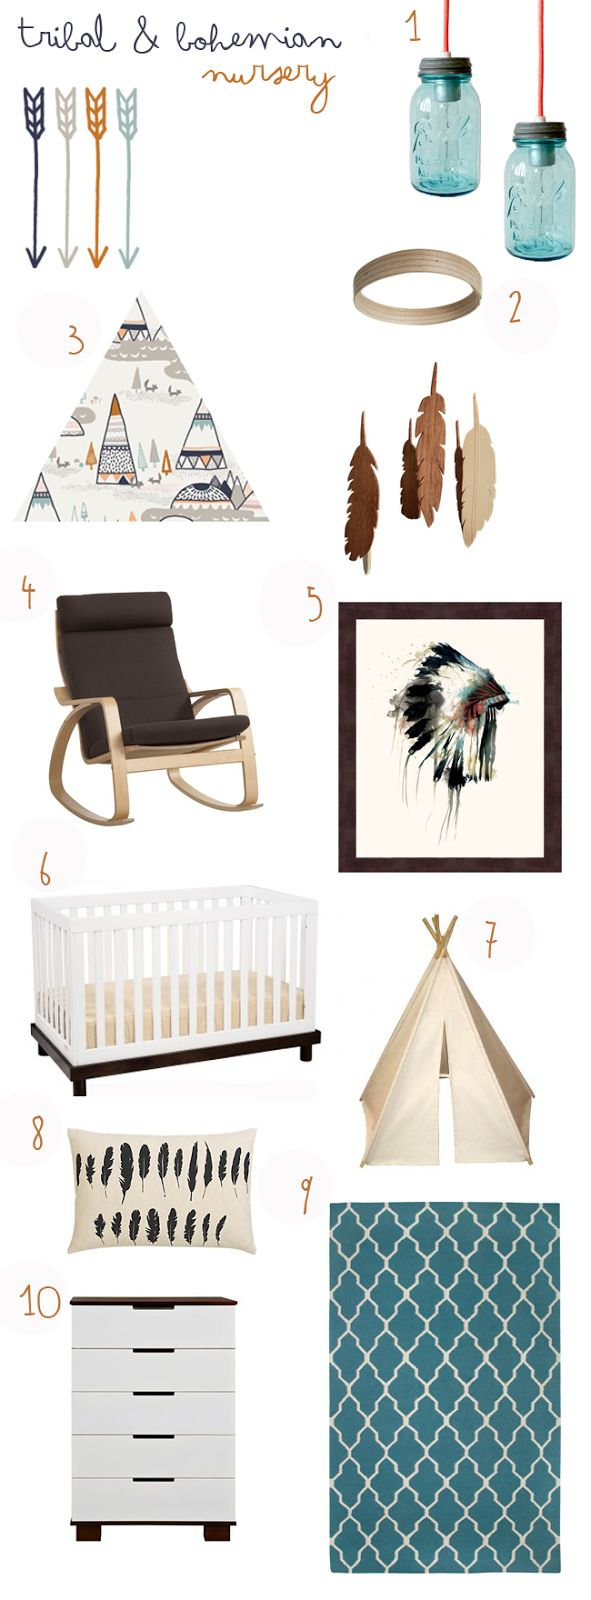 DIY projects are perfect for your Aztec or tribal themed nursery! Items and fabric featuring feather prints and arrows will go perfectly in the space.